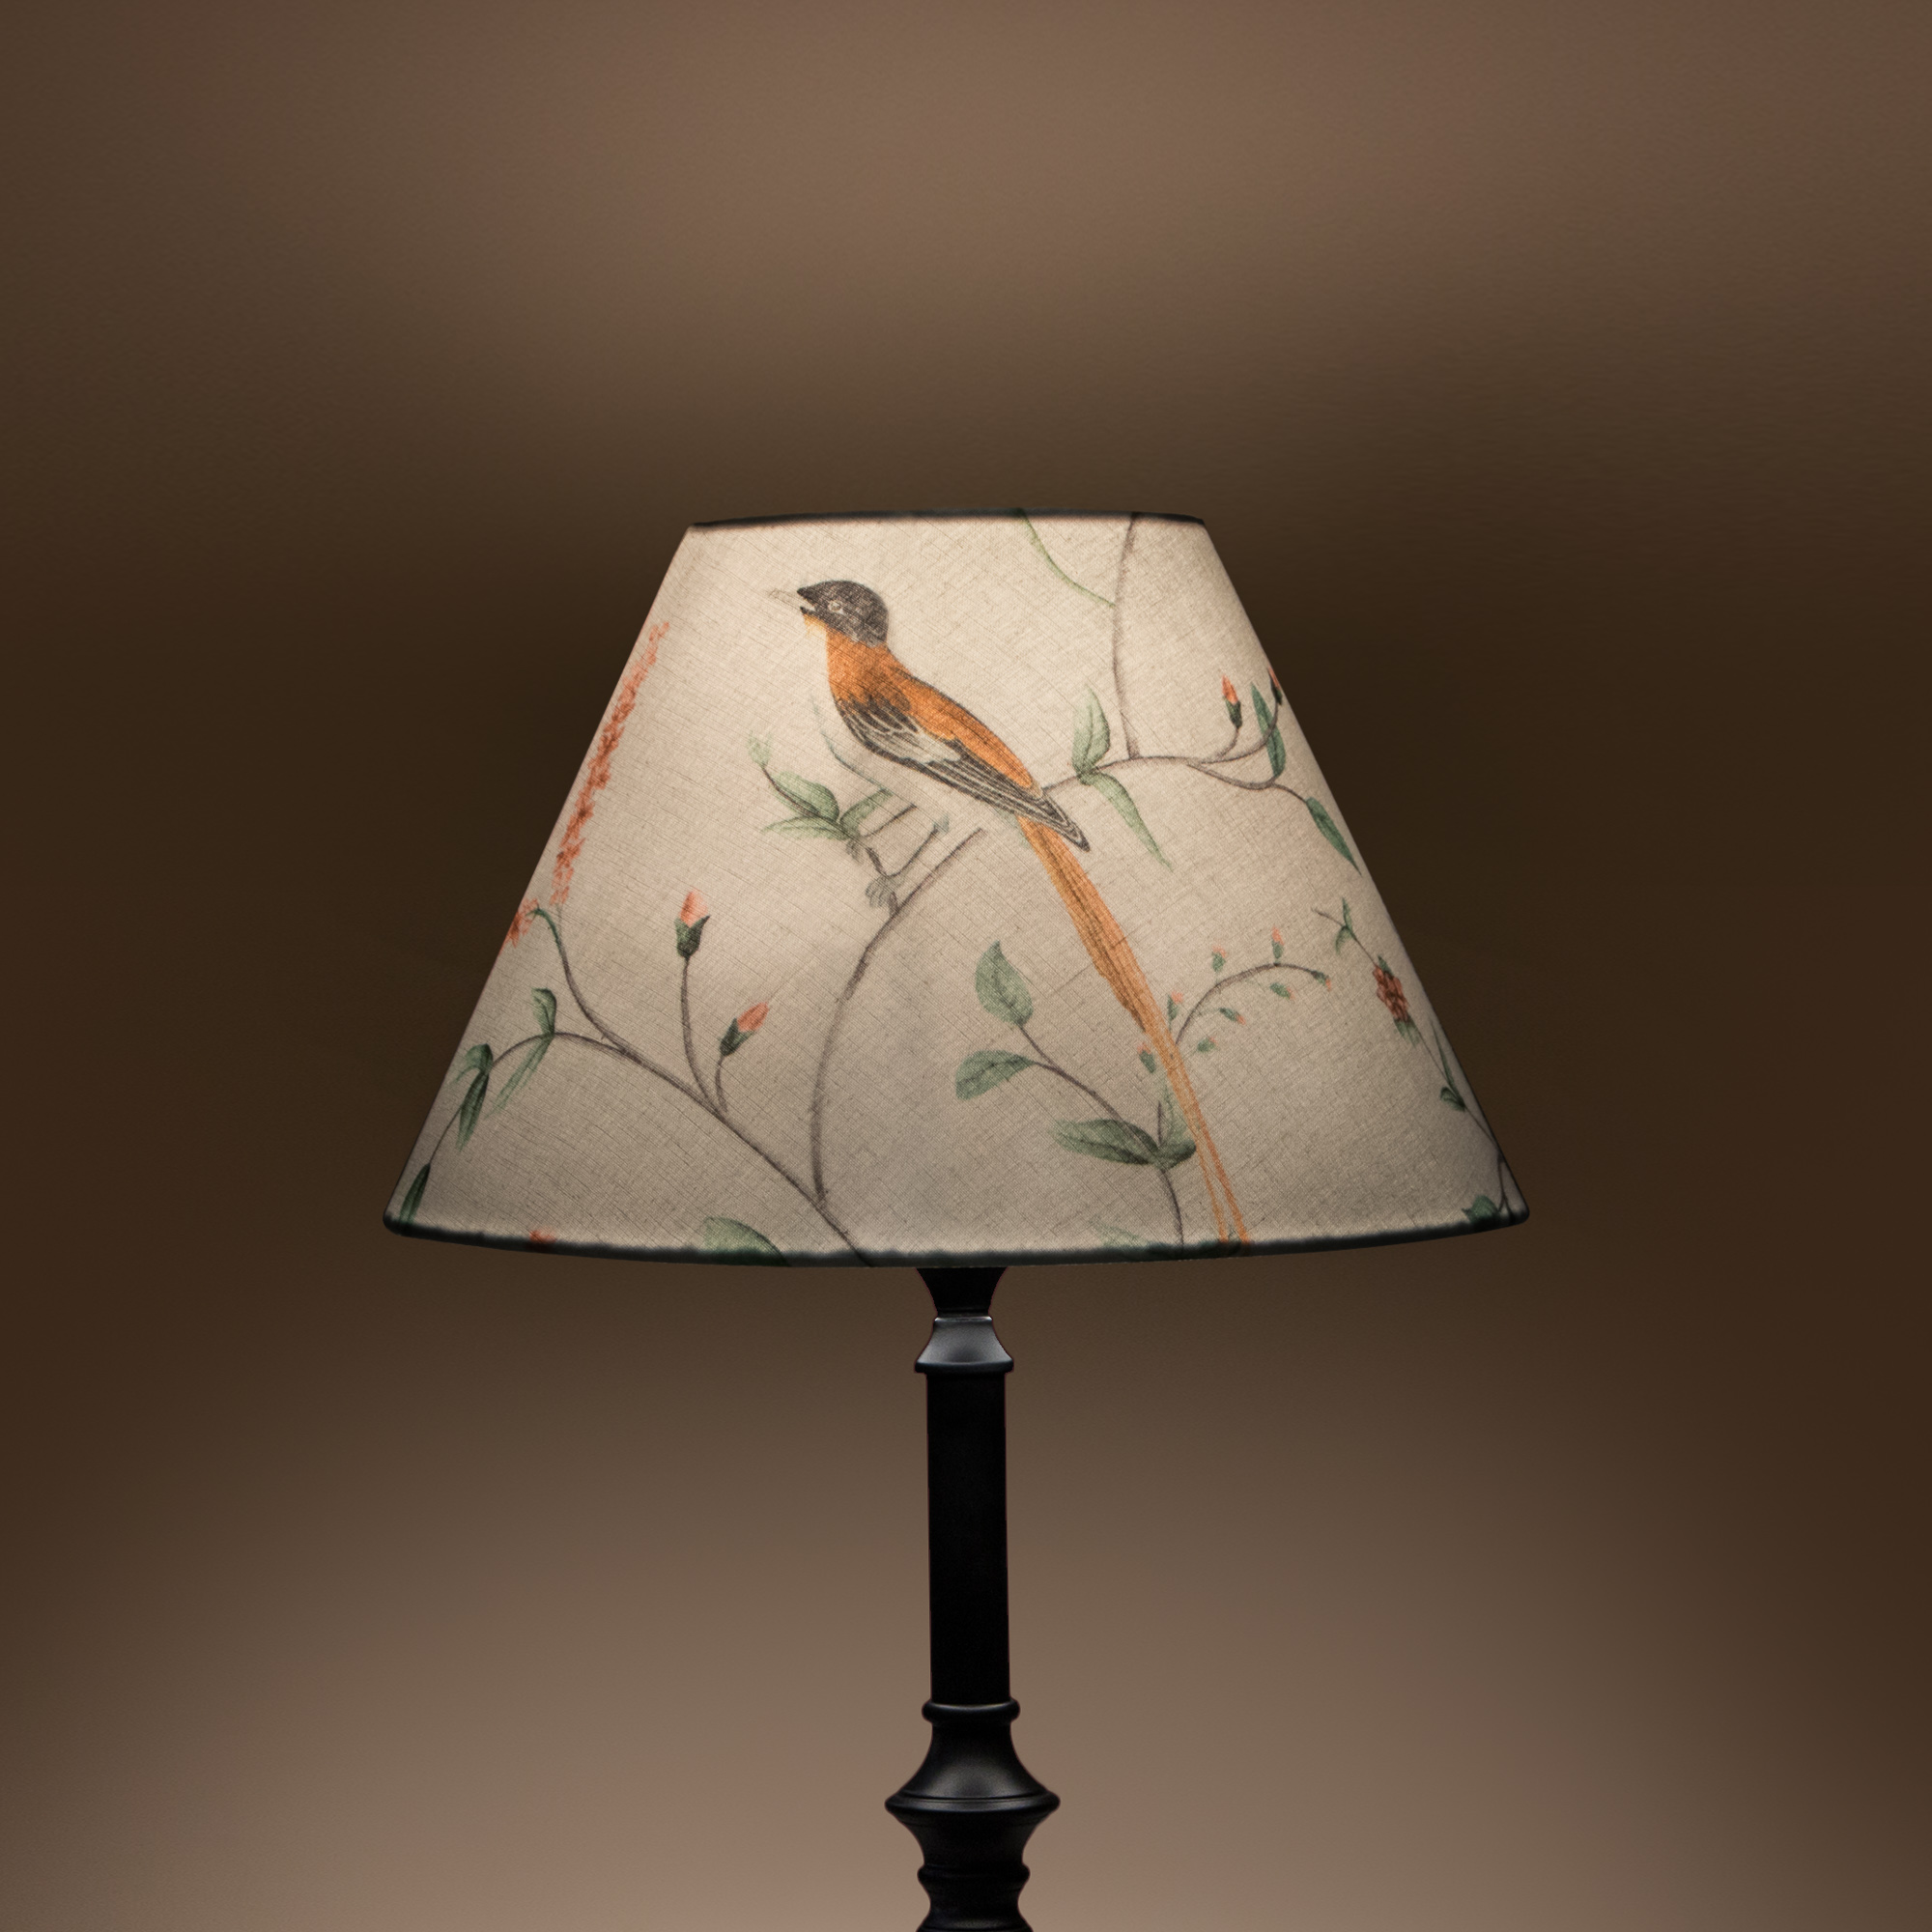 Cottage Bell Lampshade – Small - A Persian Garden Dawn